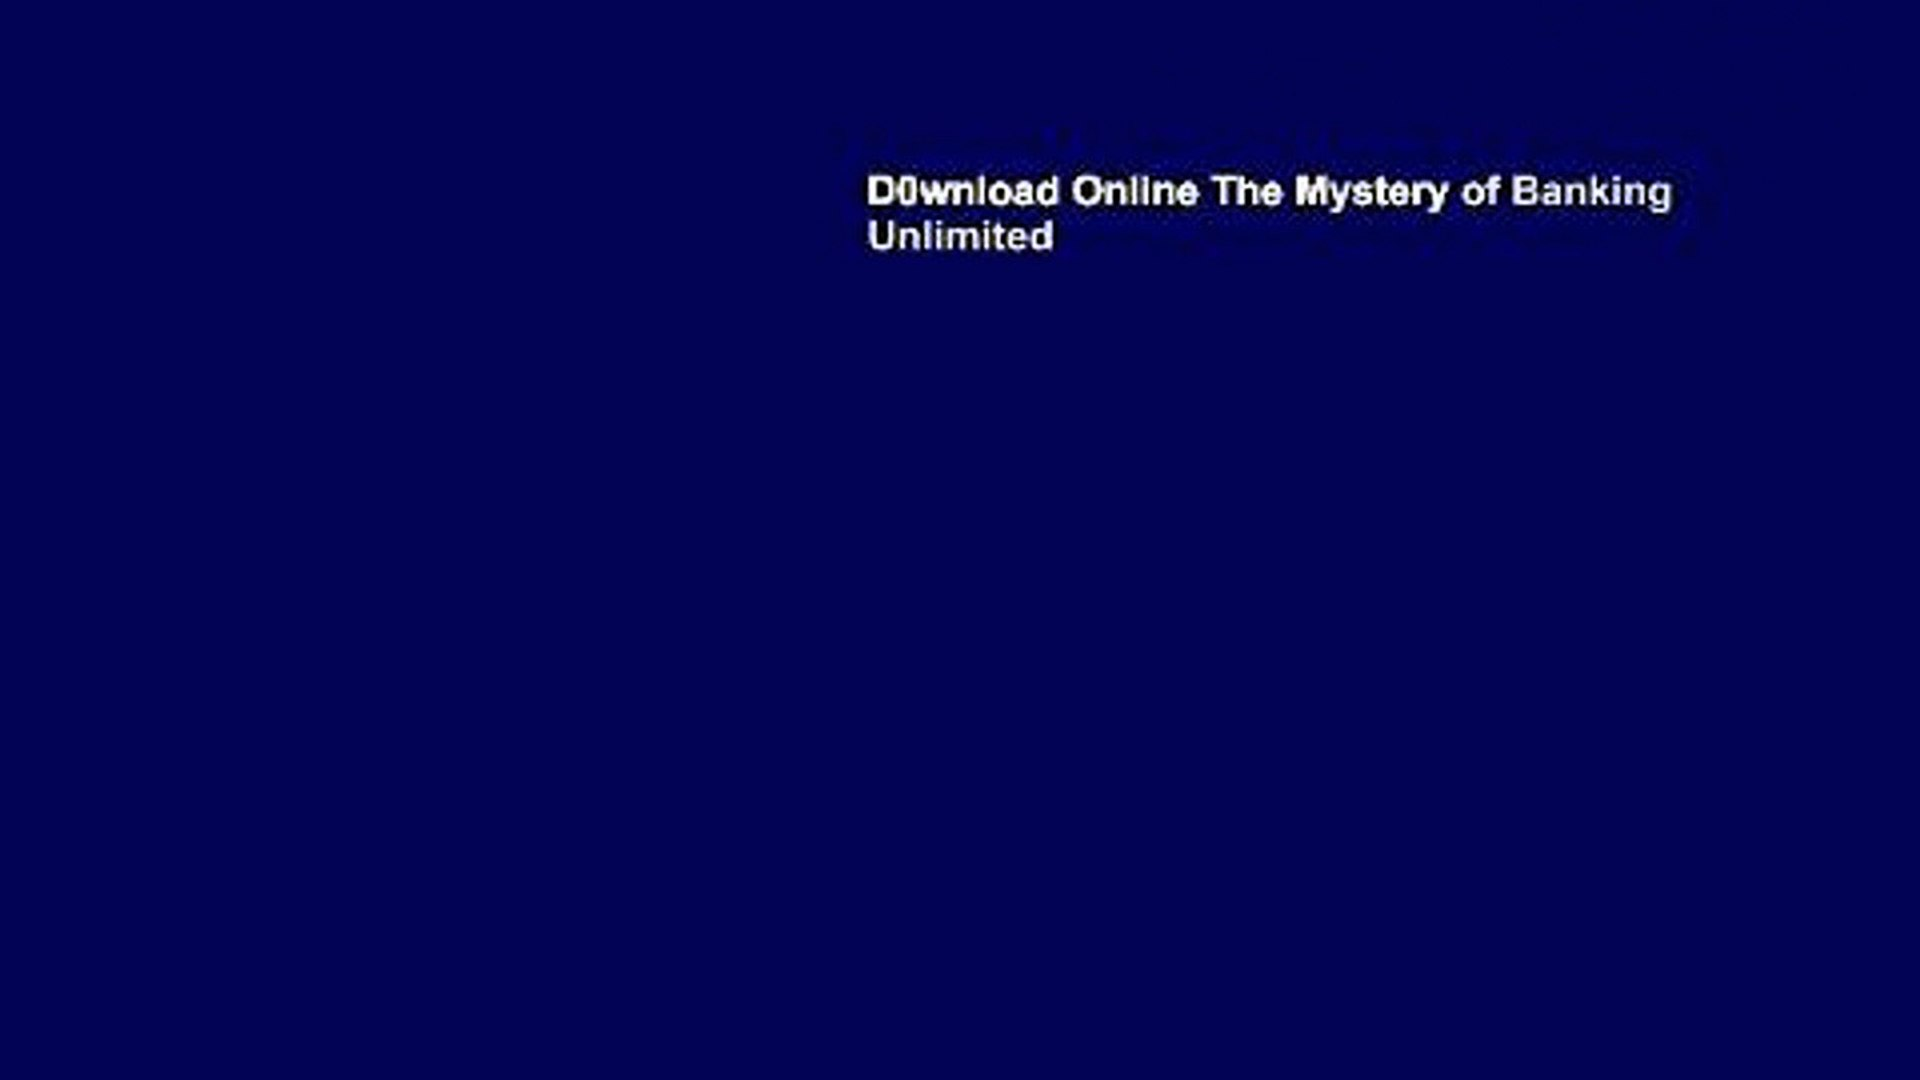 D0wnload Online The Mystery of Banking Unlimited